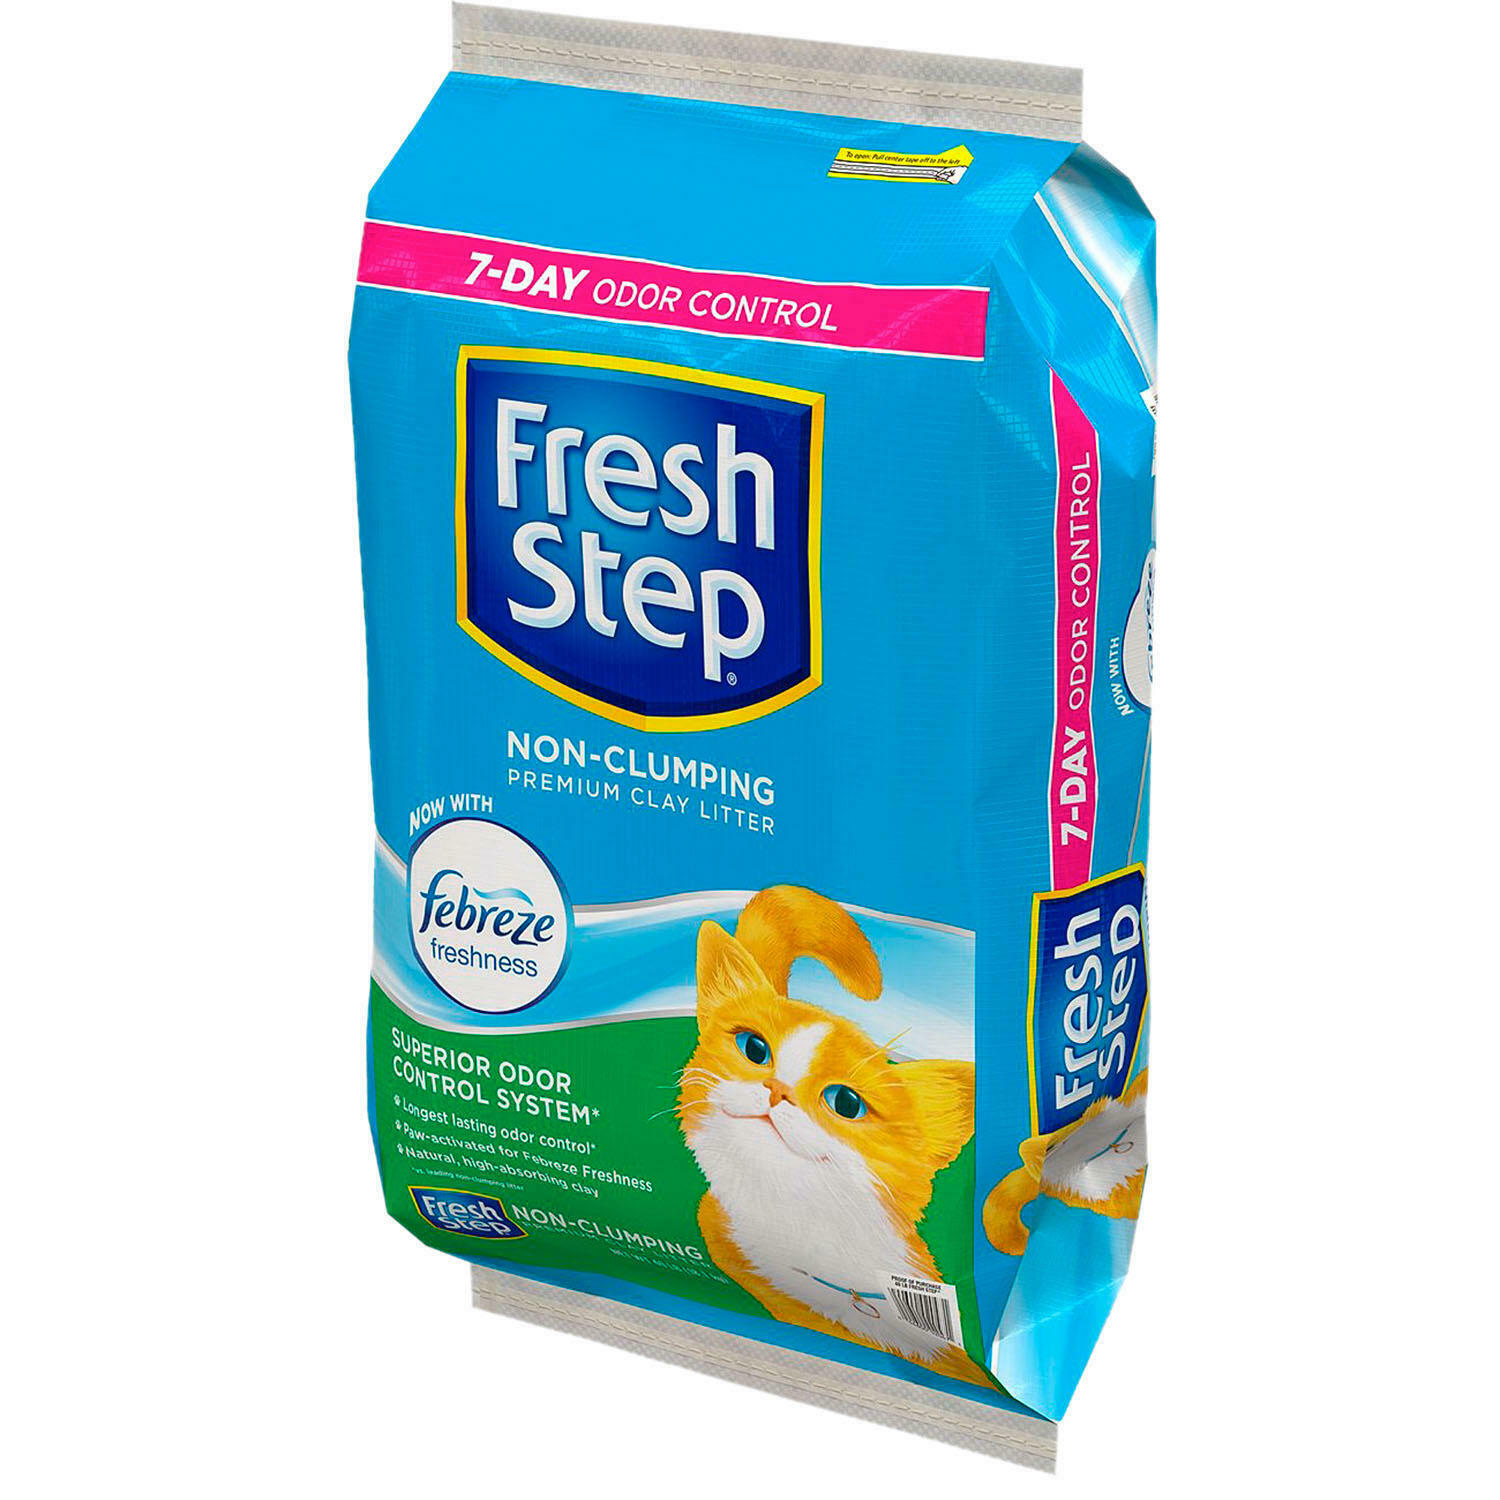 Fresh Step Non-Clumping Premium Cat Litter with Febreze Fres